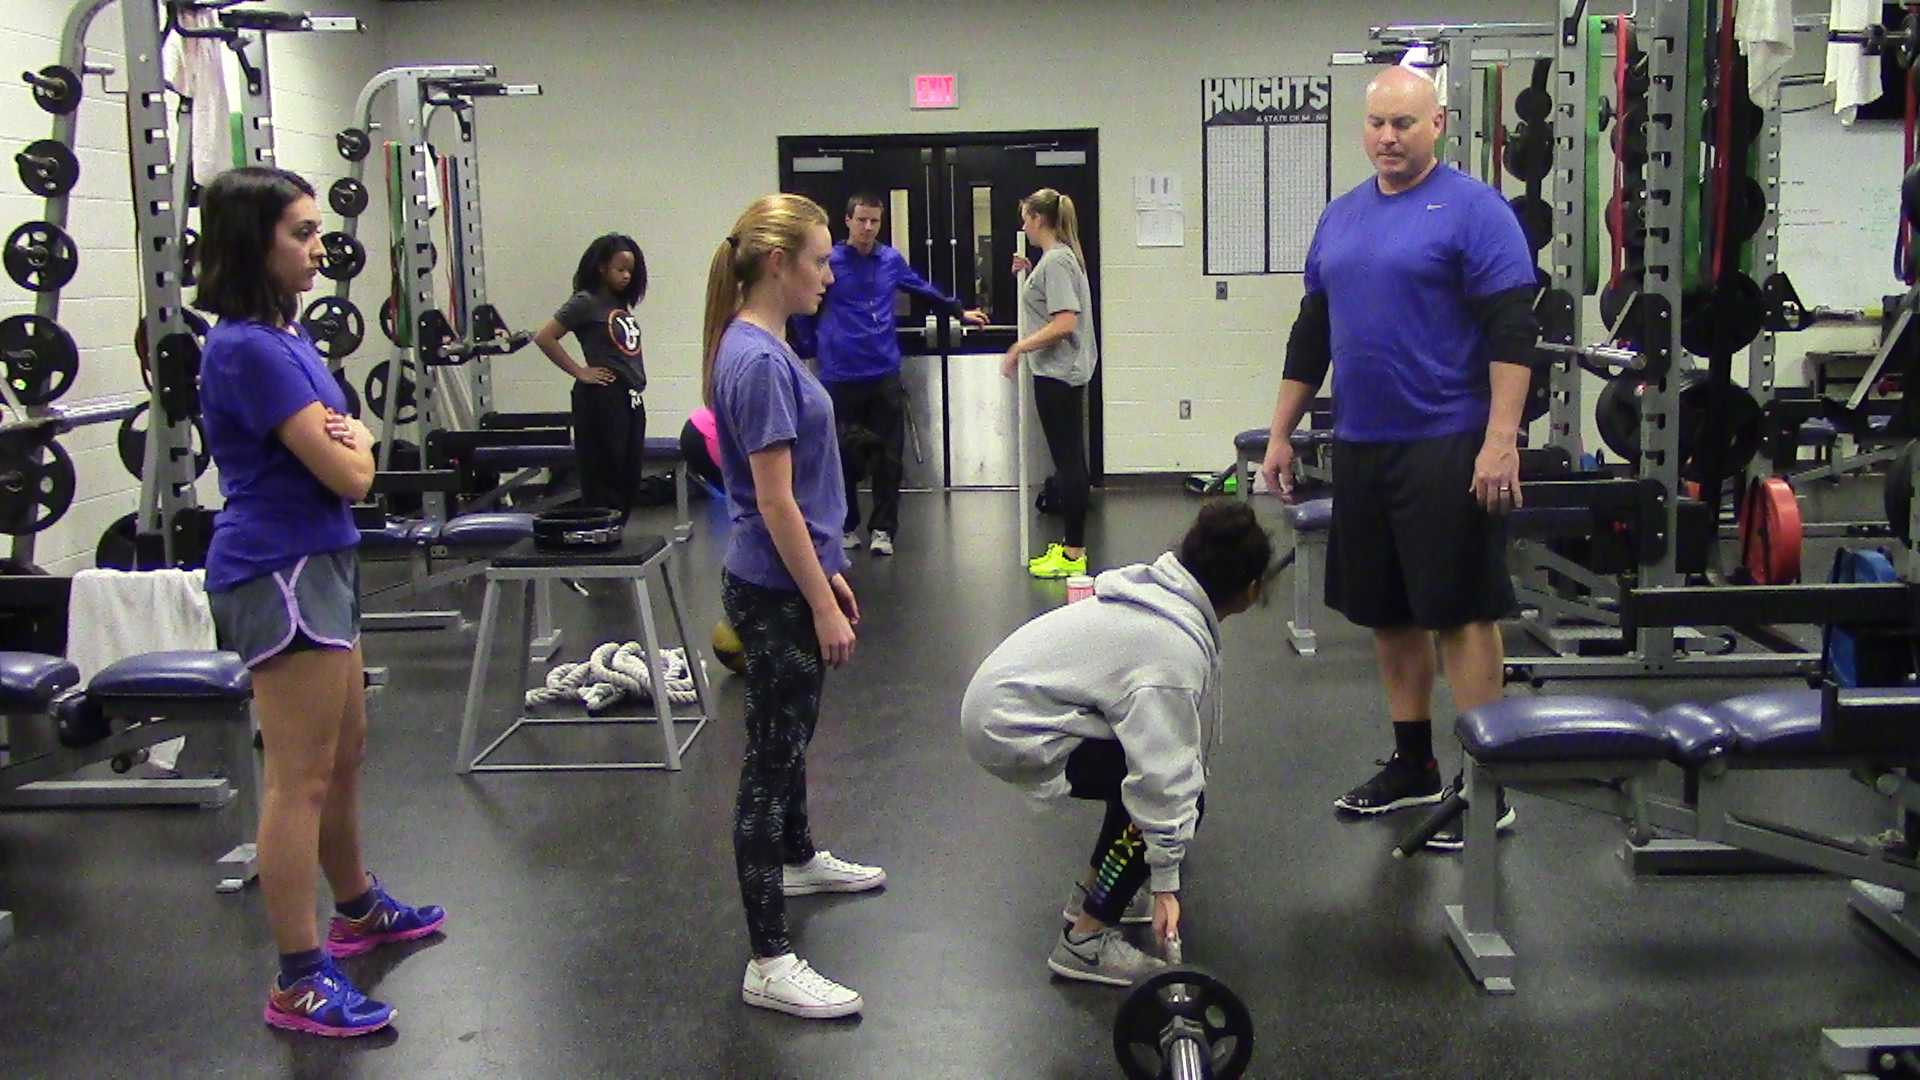 Coach Walker checks if the female powerlifters are using proper lifting techniques. He does this to make sure they'll be ready for any co-ed competitions, meets or even practices.